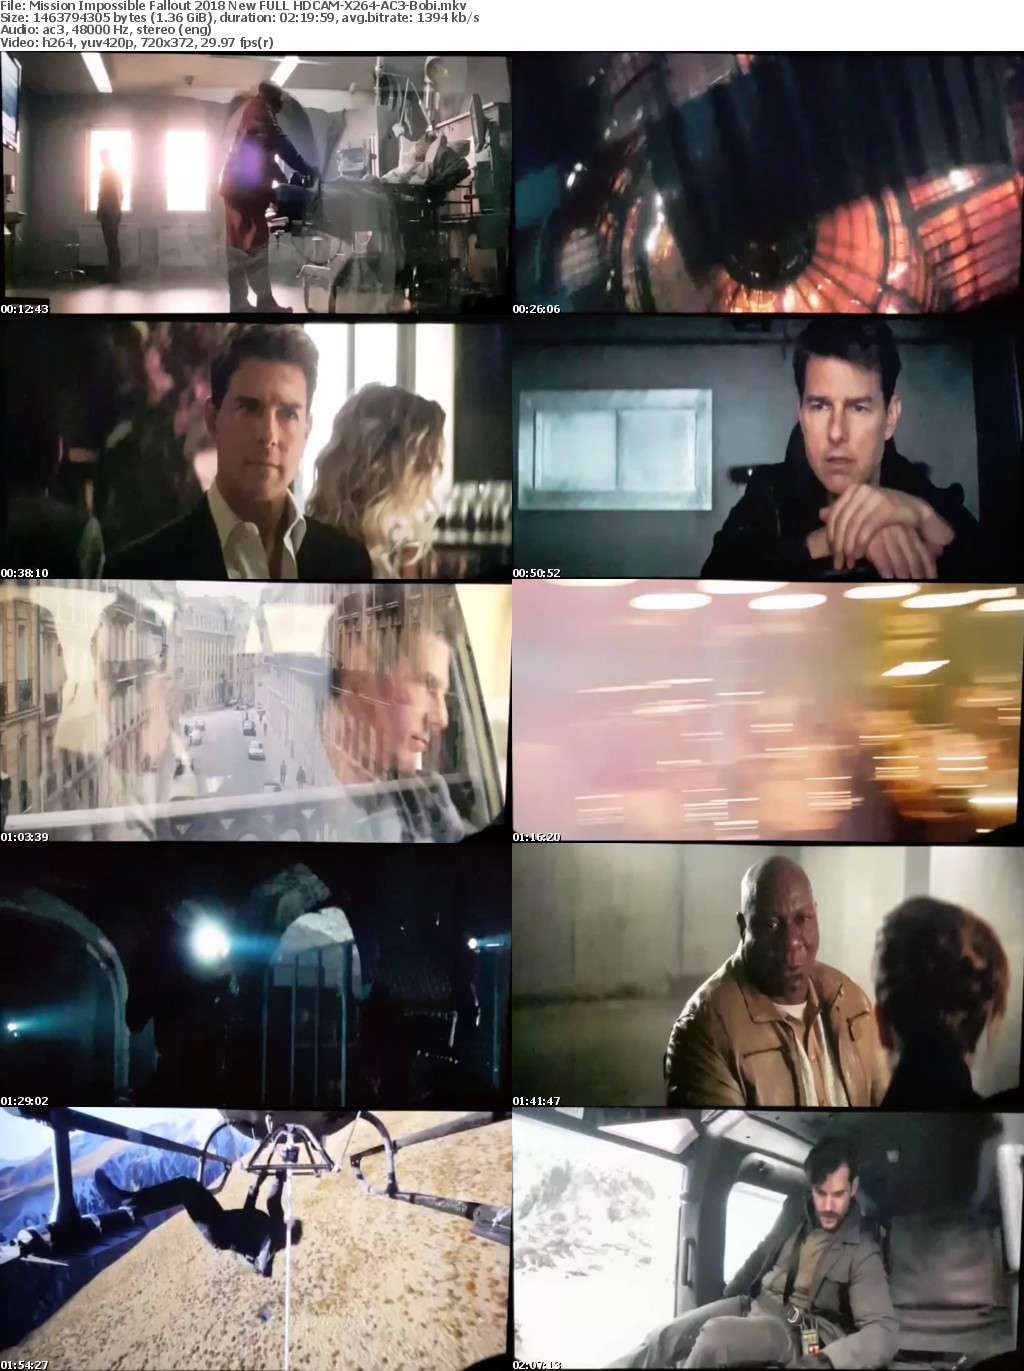 Mission Impossible Fallout 2018 New FULL HDCAM-X264-AC3-Bobi